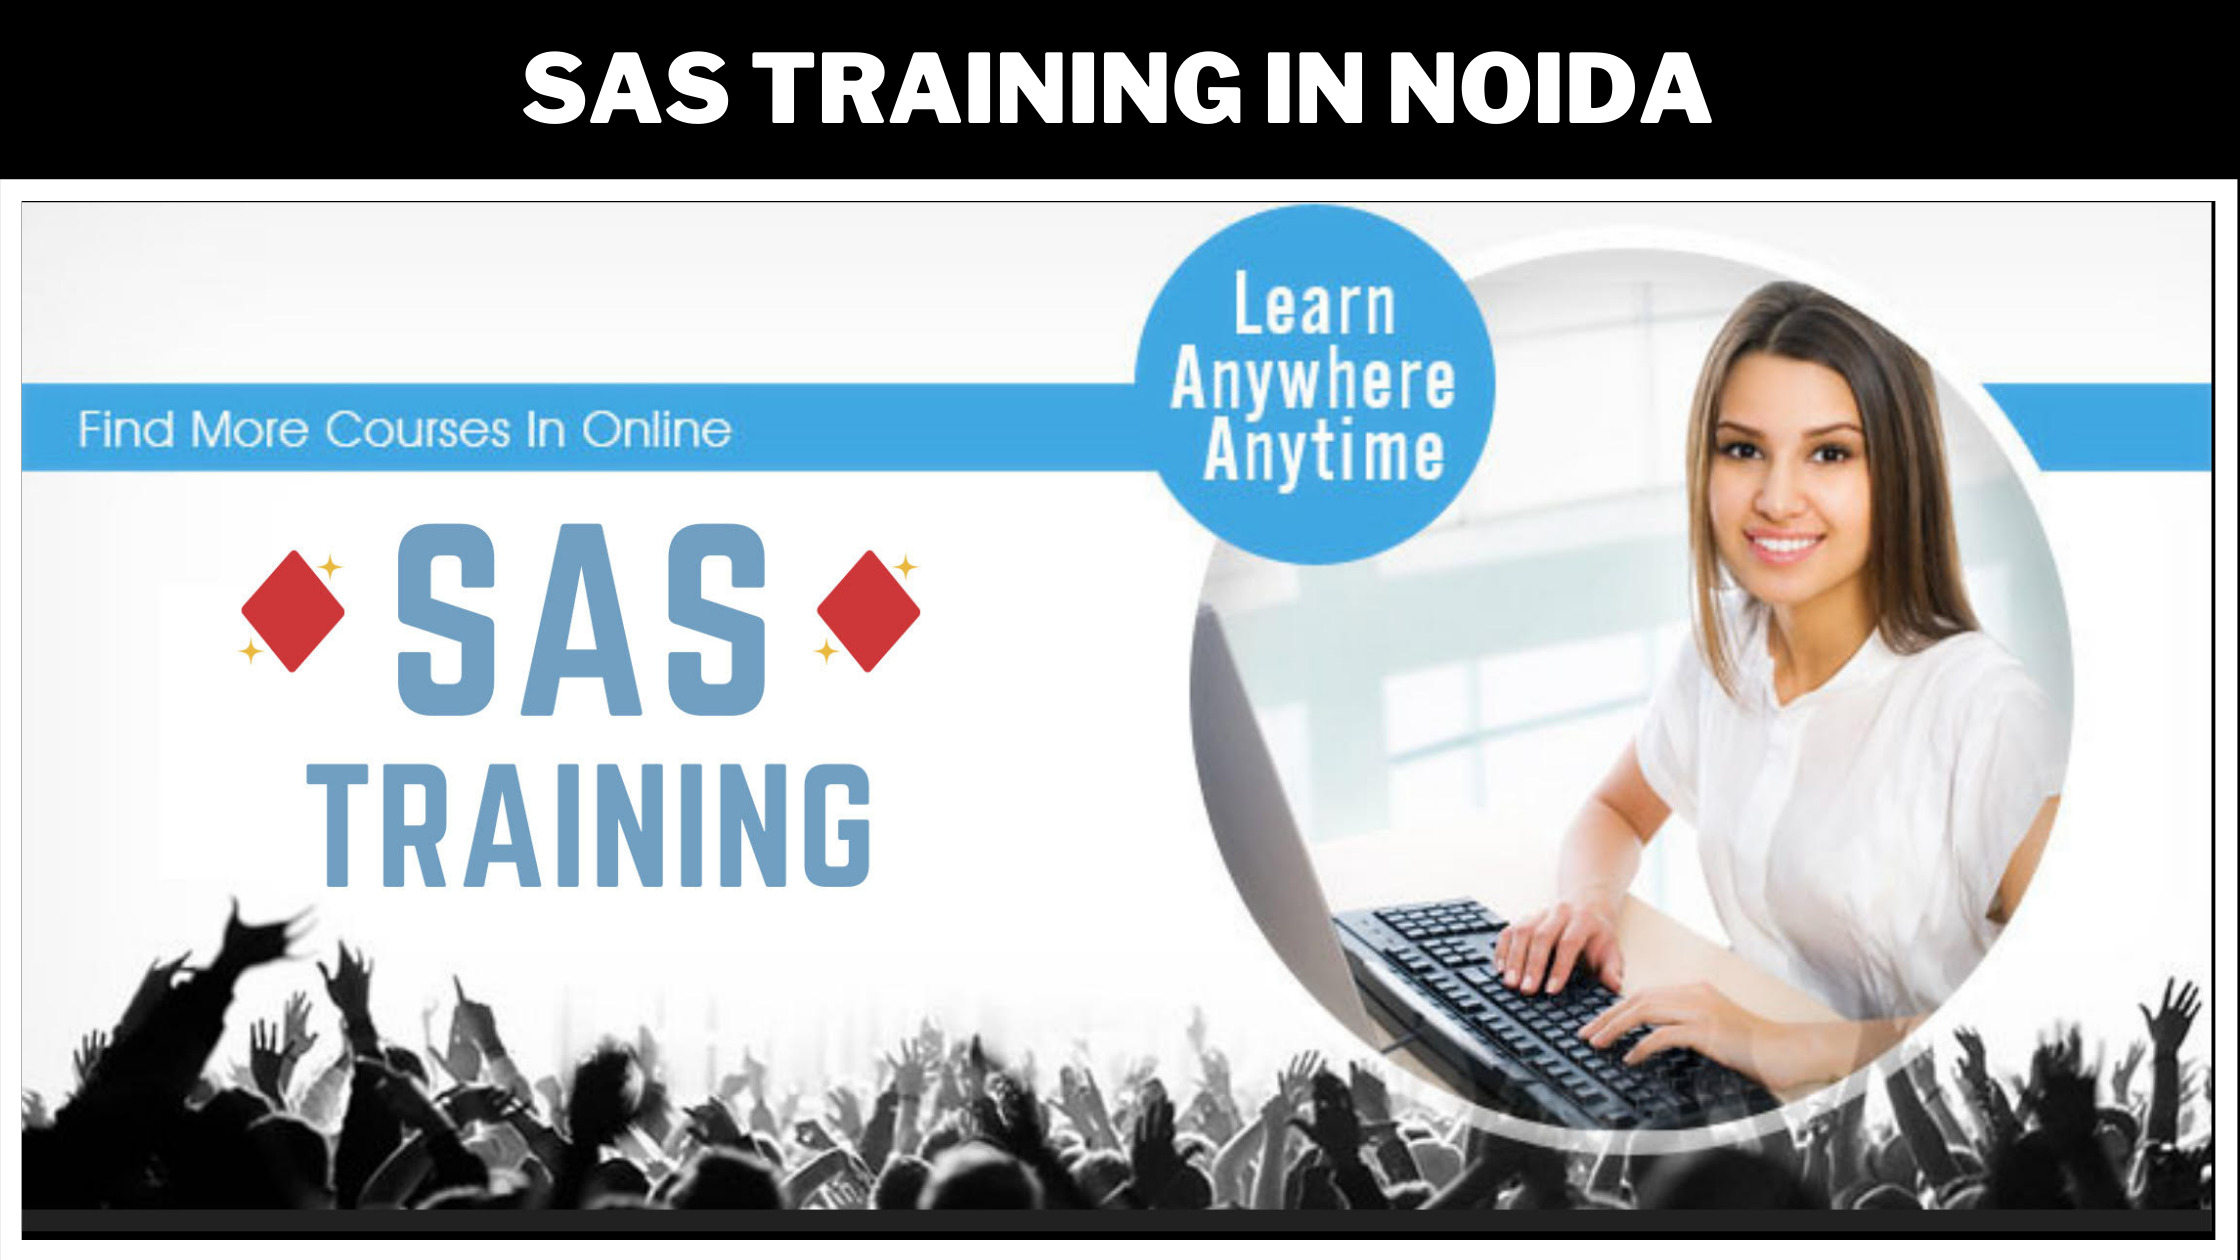 sas_training_in_noida-background.jpeg